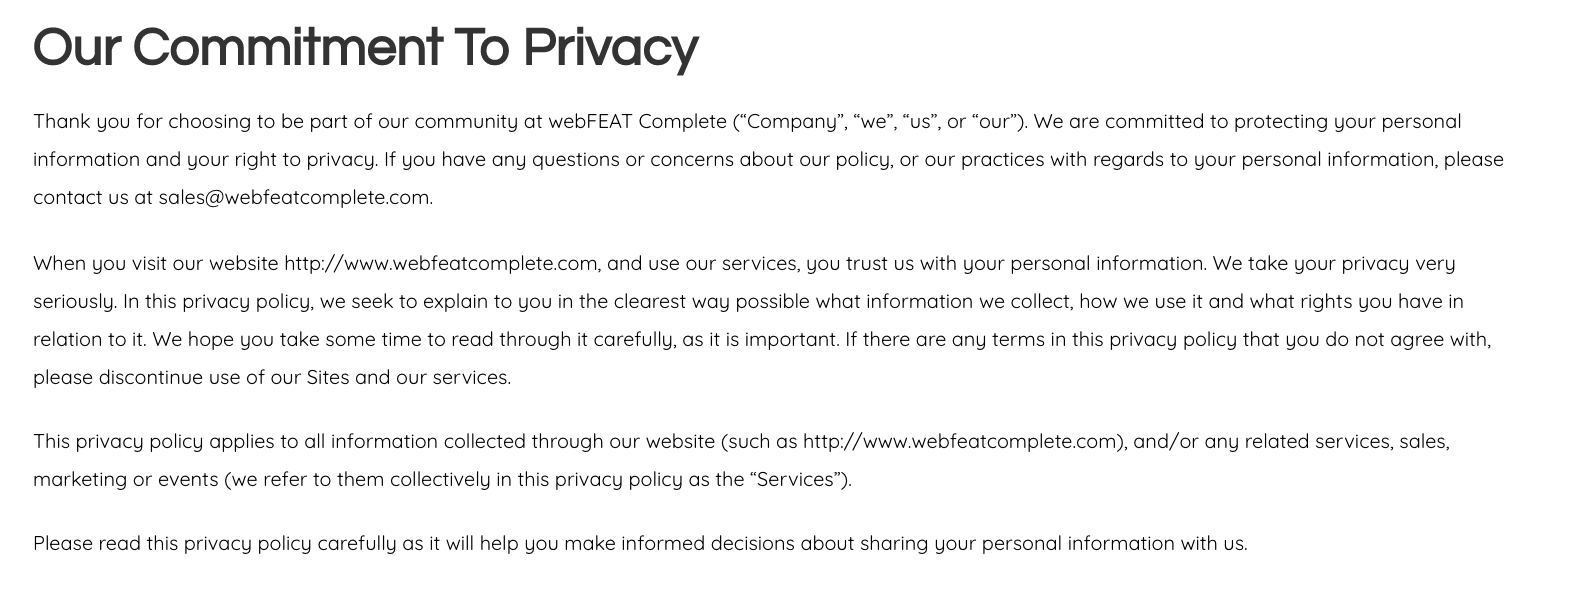 webFEAT Complete's privacy policy intro paragraph